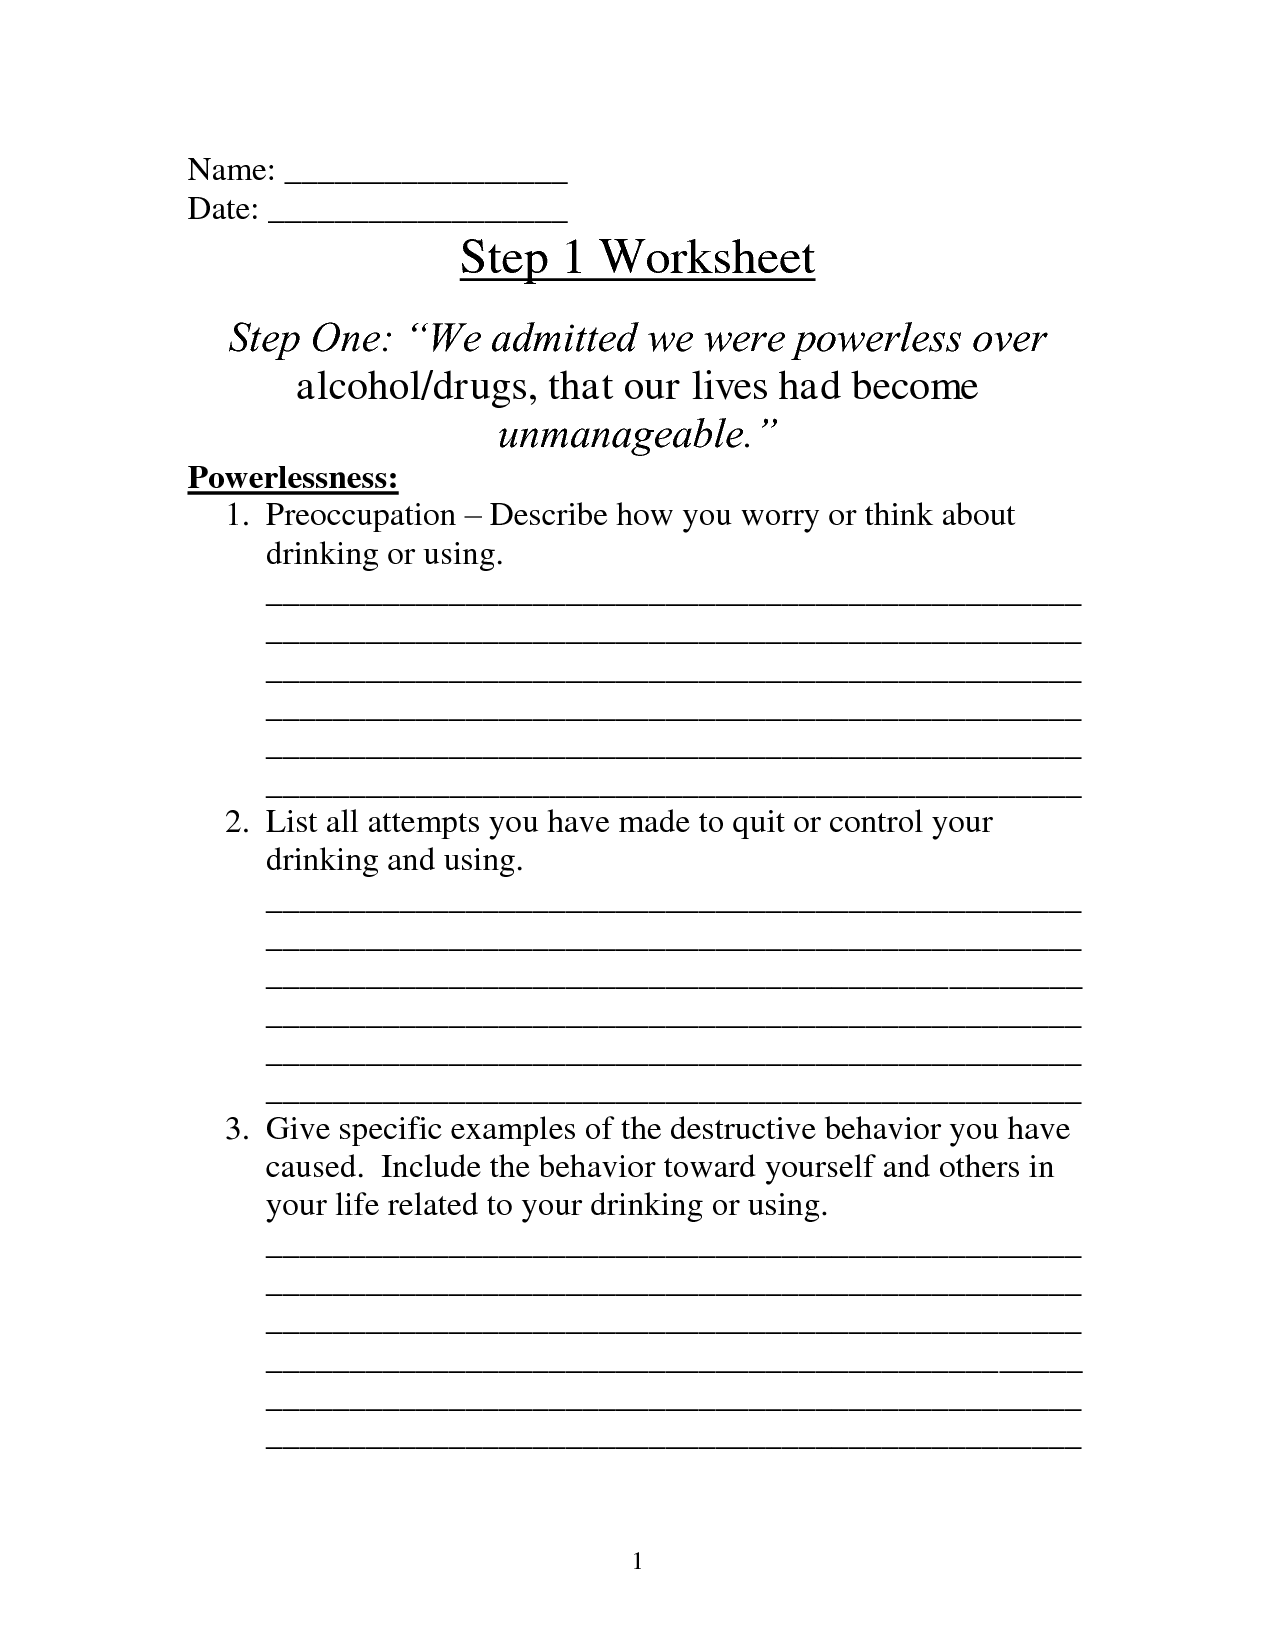 Laundry Steps Printable Worksheet